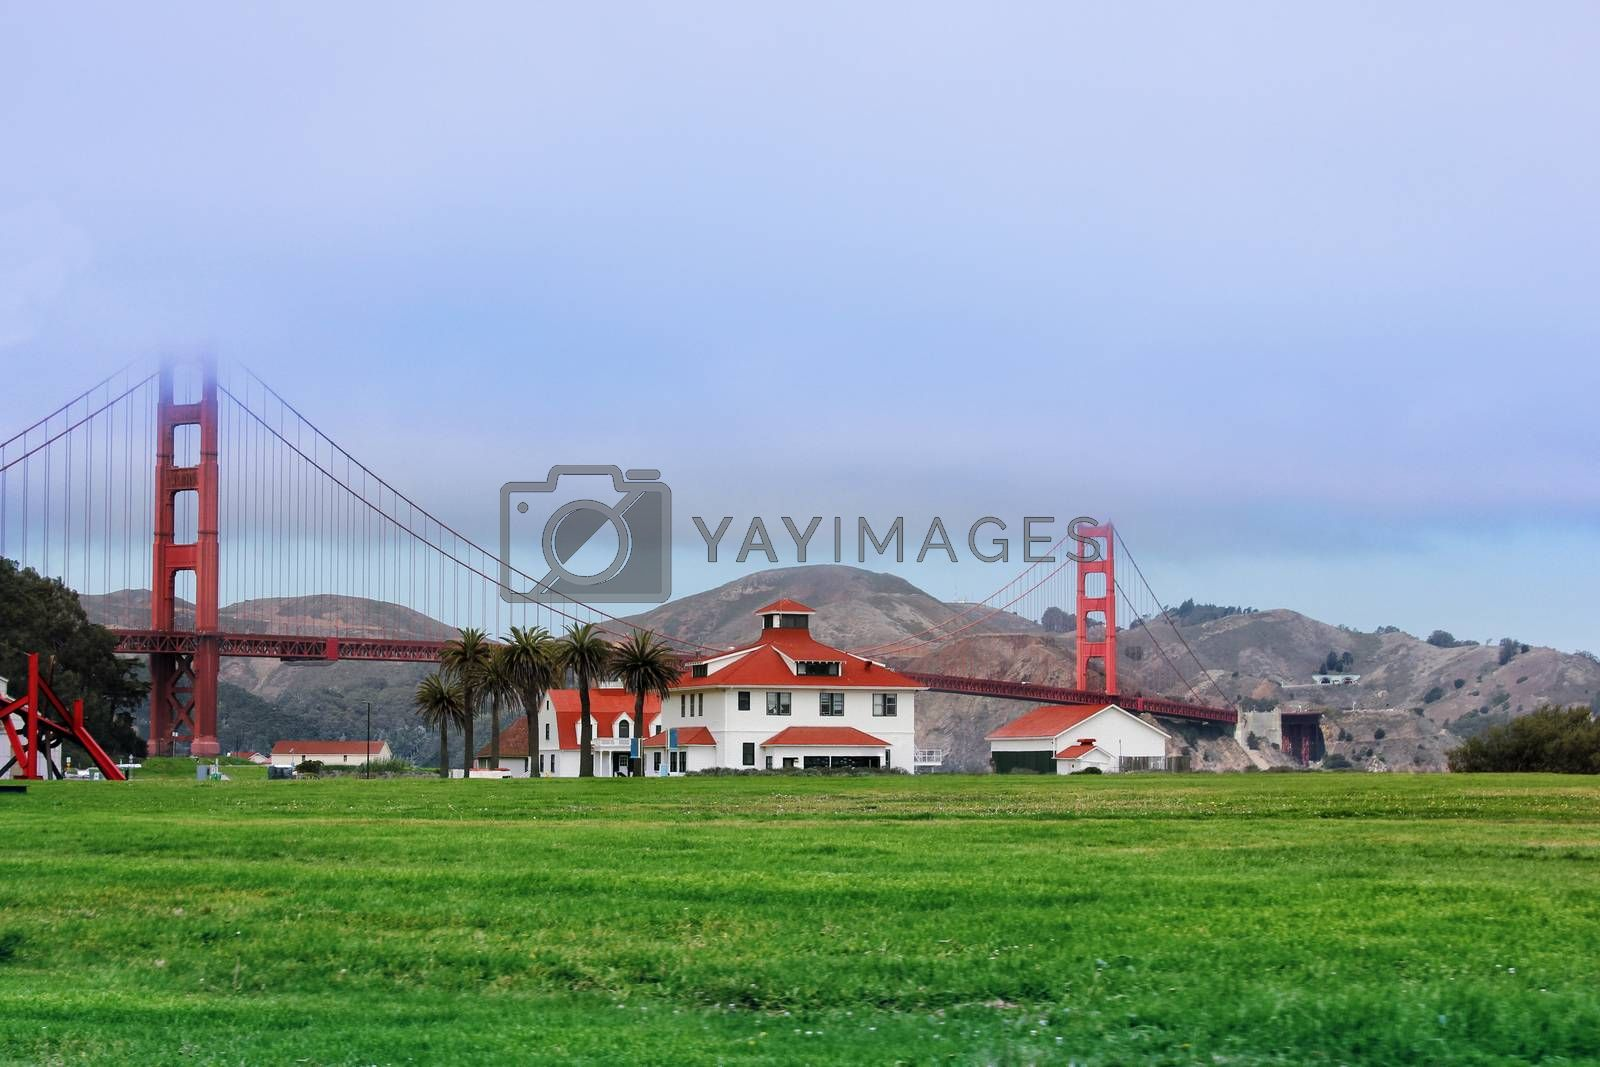 Golden Gate Bridge in San Francisco at sunset by friday